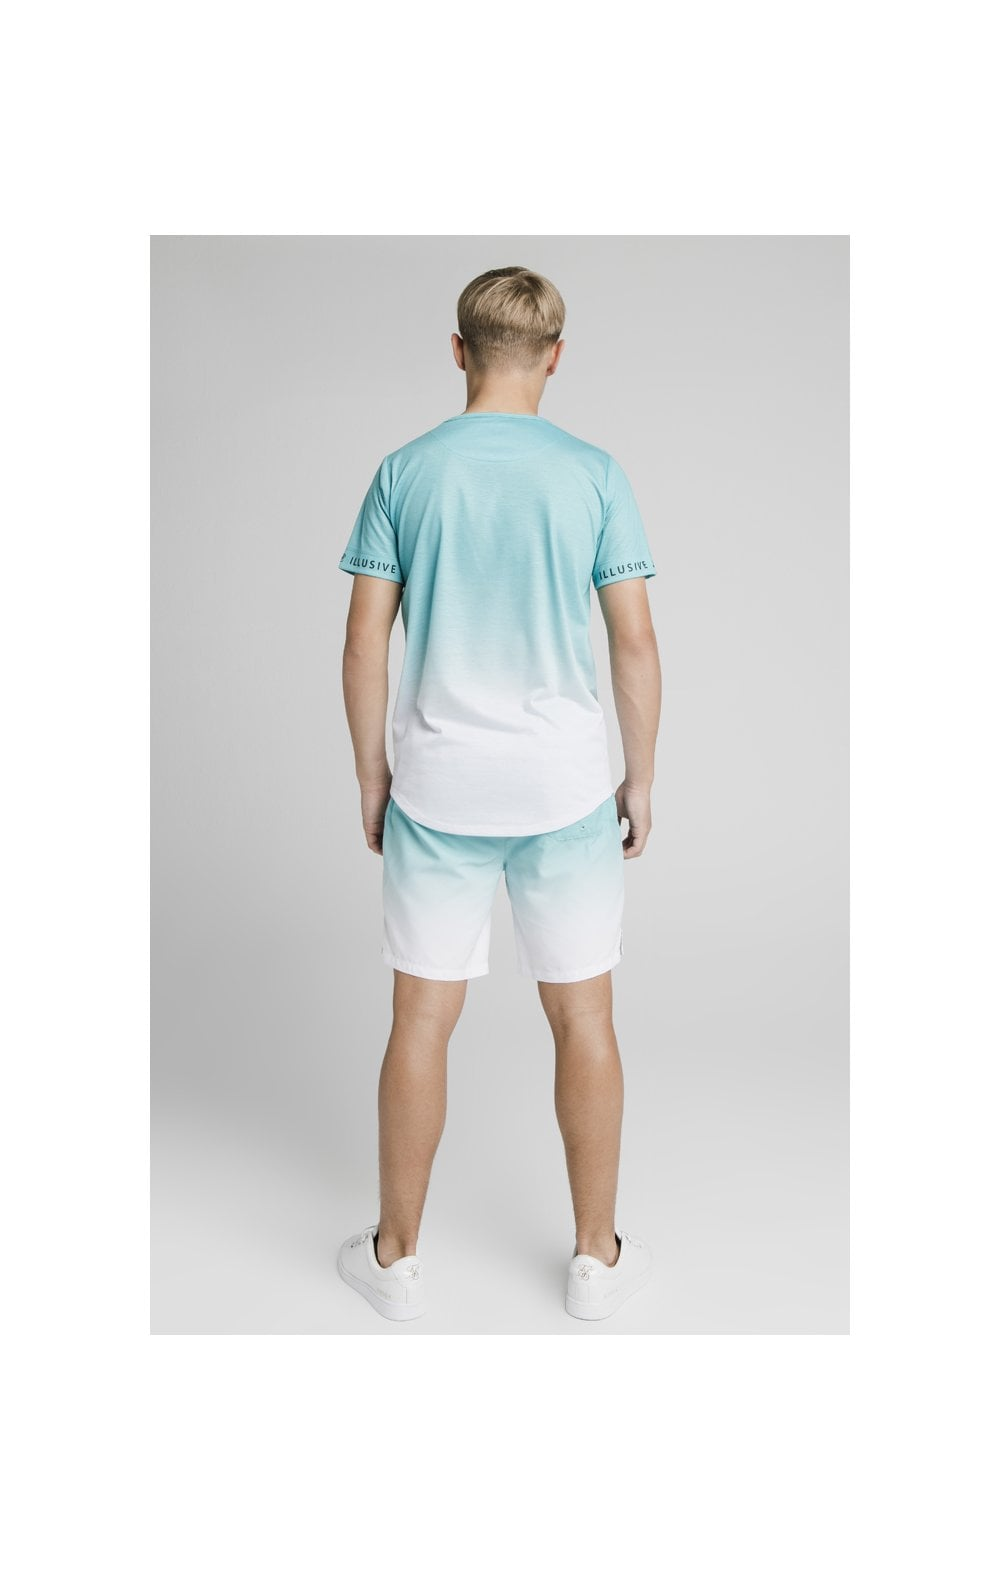 Load image into Gallery viewer, Illusive London Fade Swim Shorts - Teal & White (8)